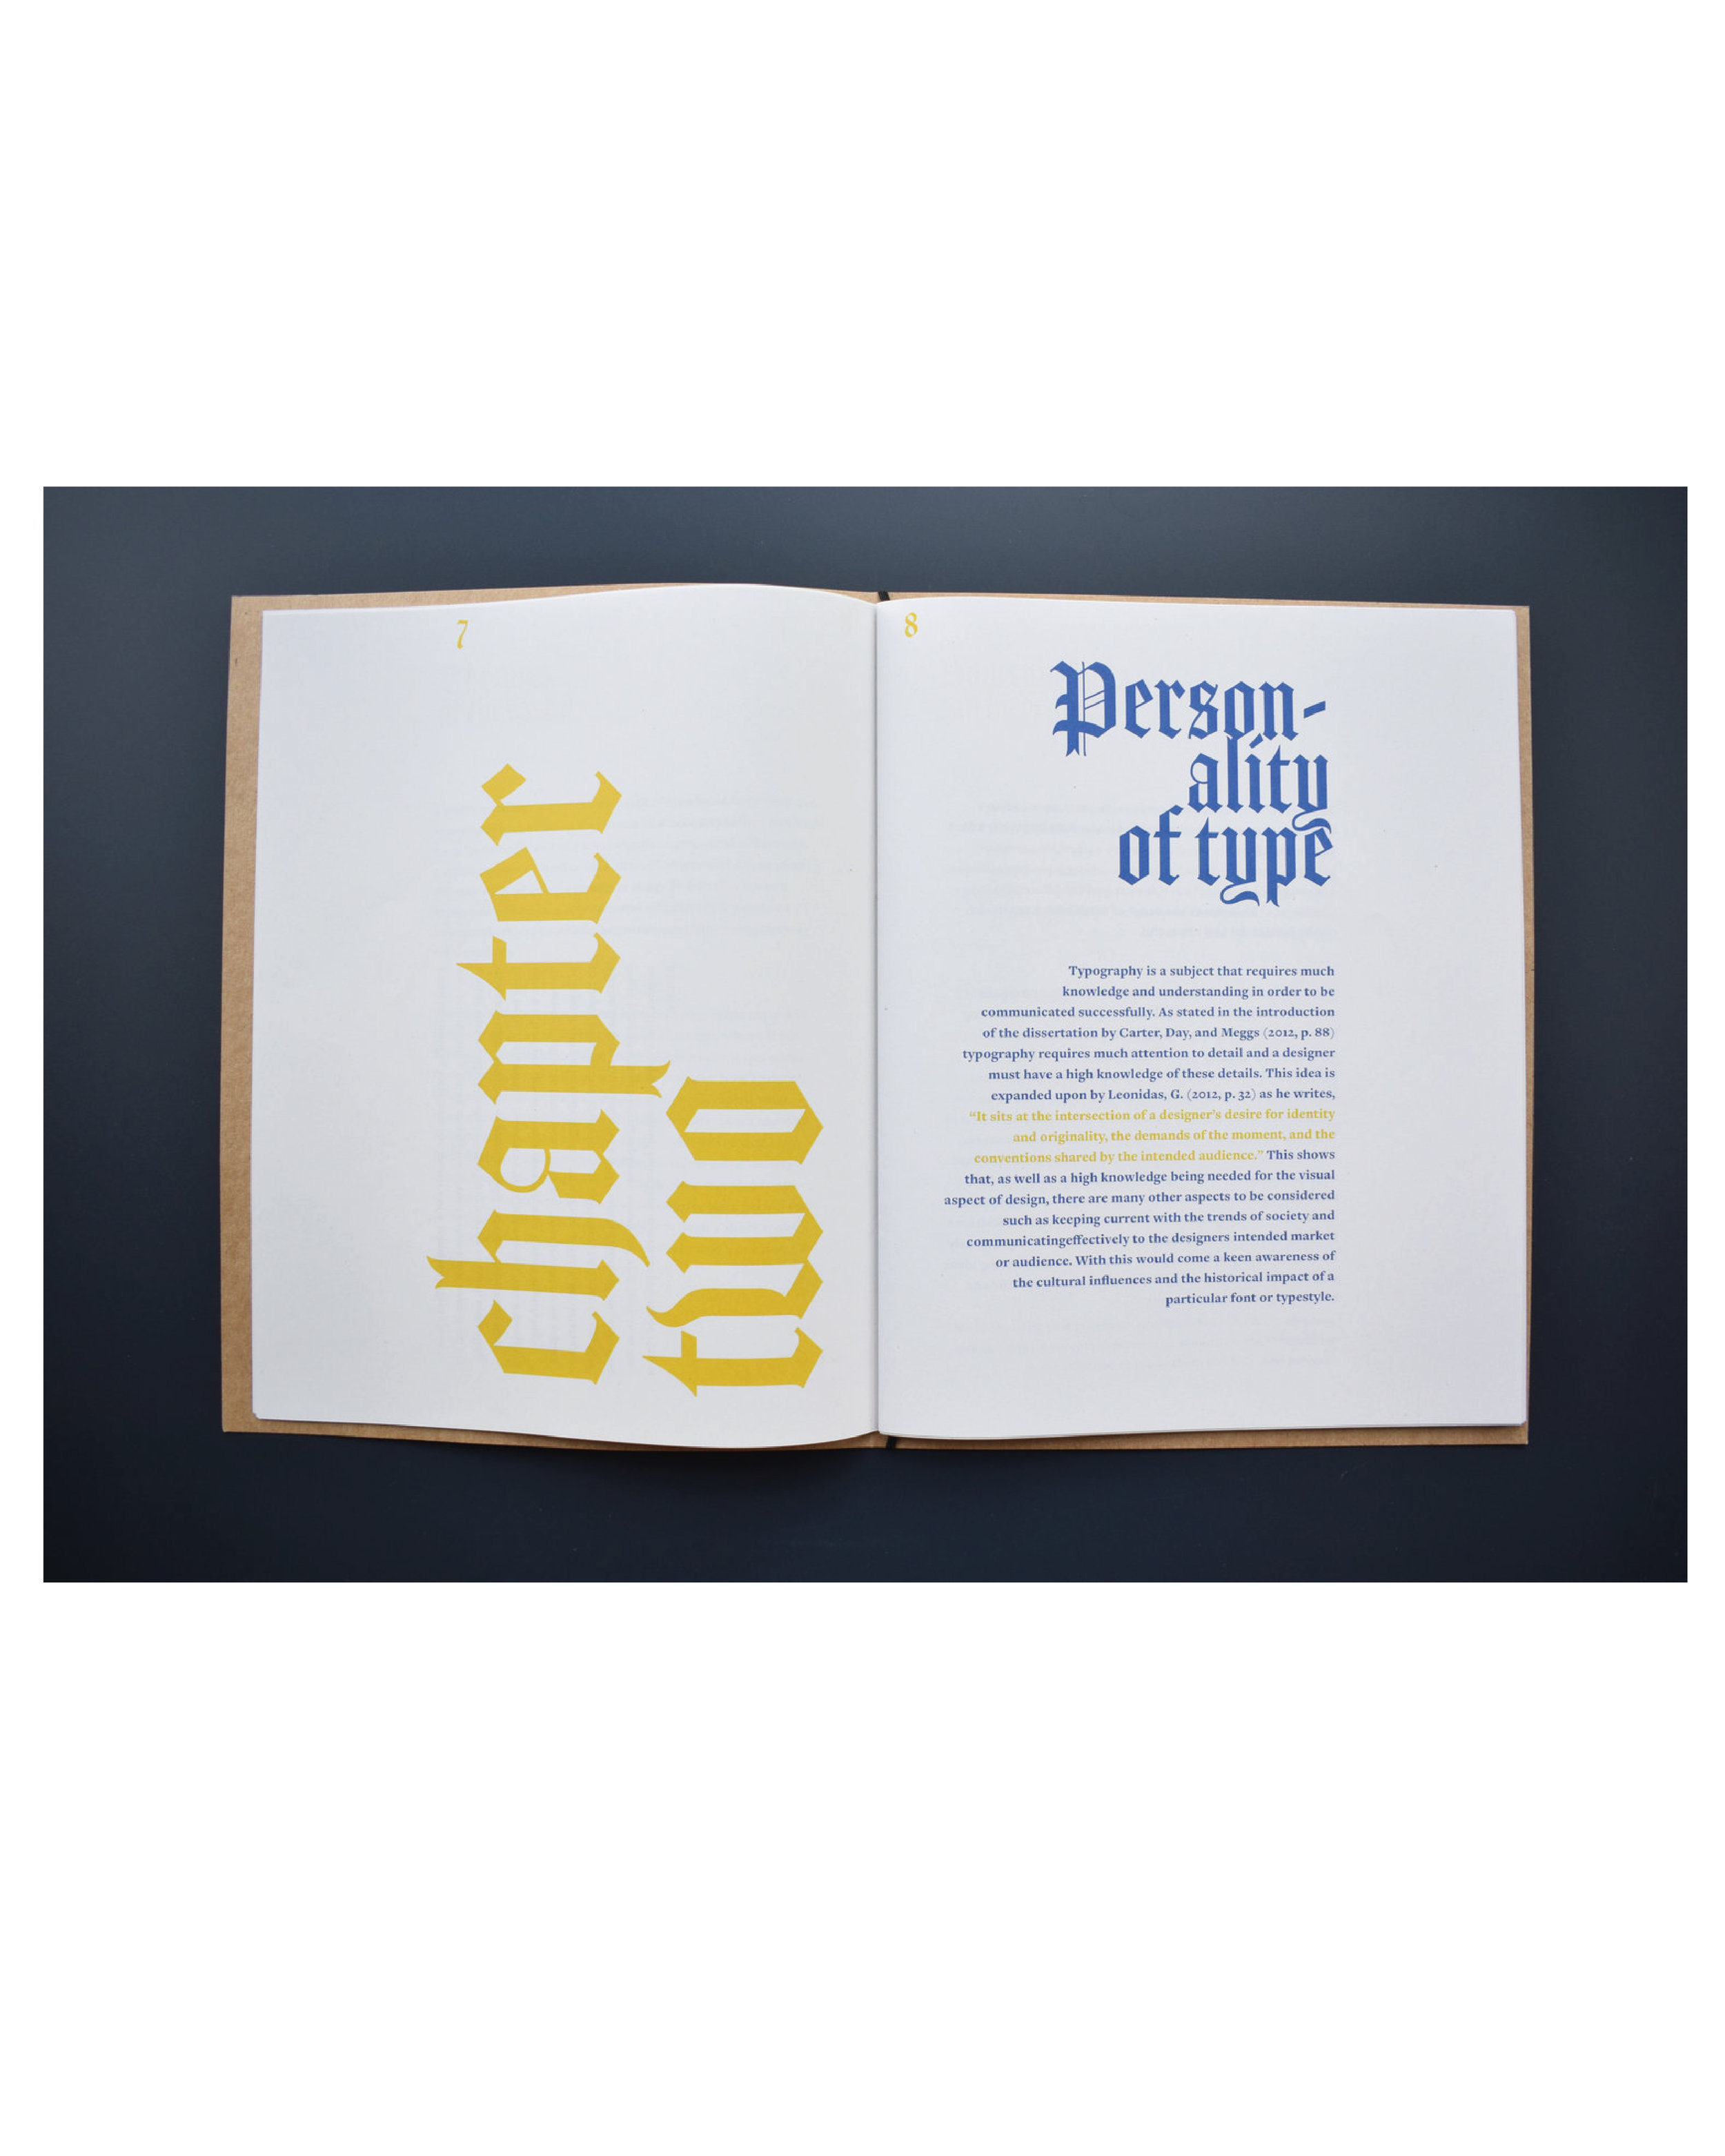 Publication Design About The Contextual Influence of Typography